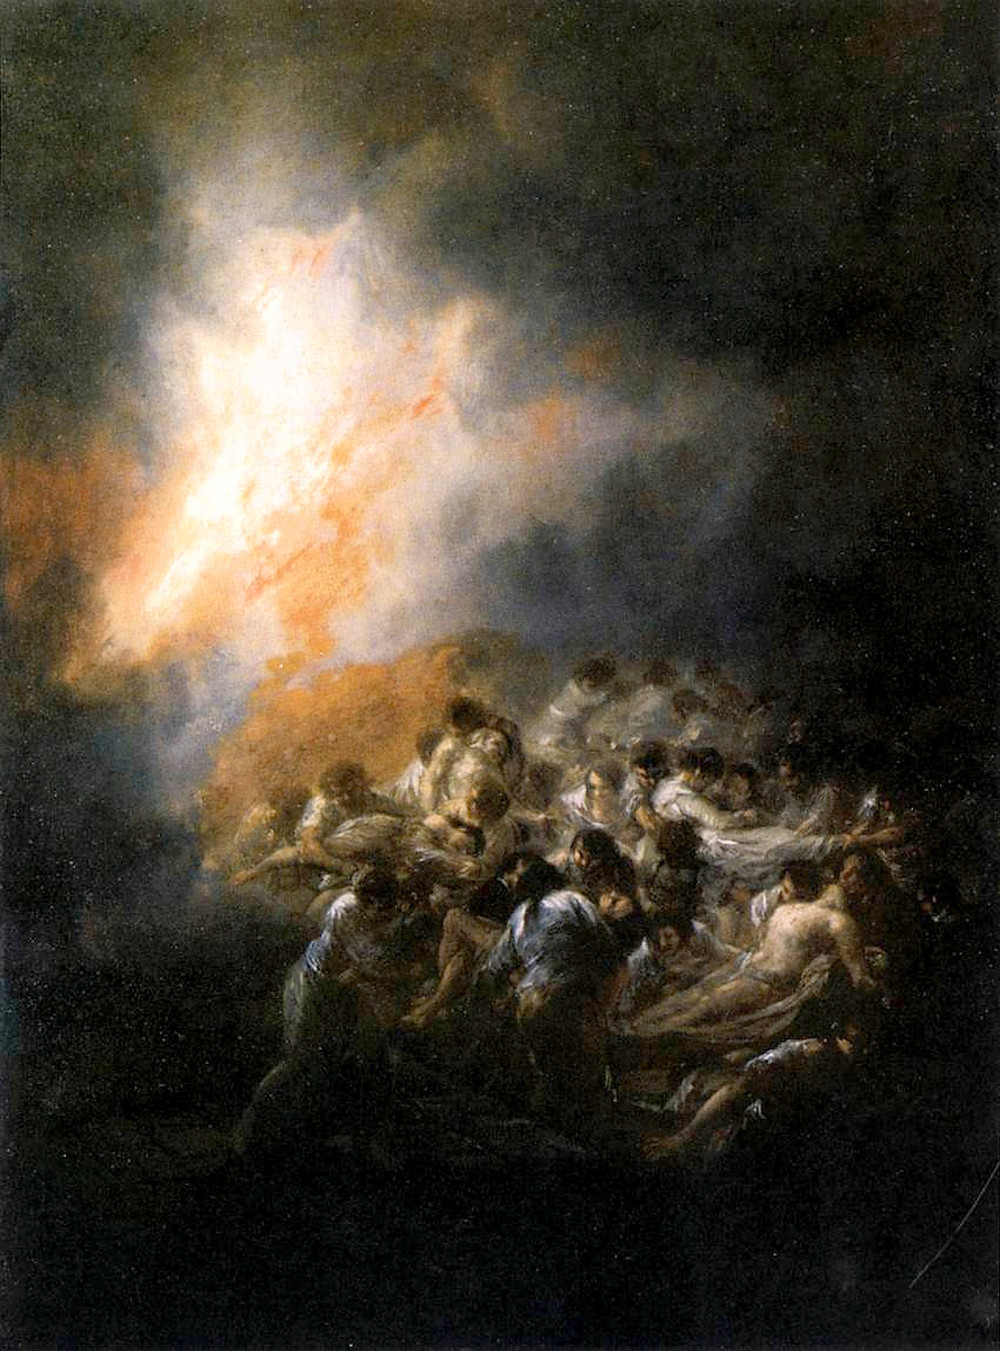 Incendio, fuego de noche by Francisco de Goya 1793 [public domain]